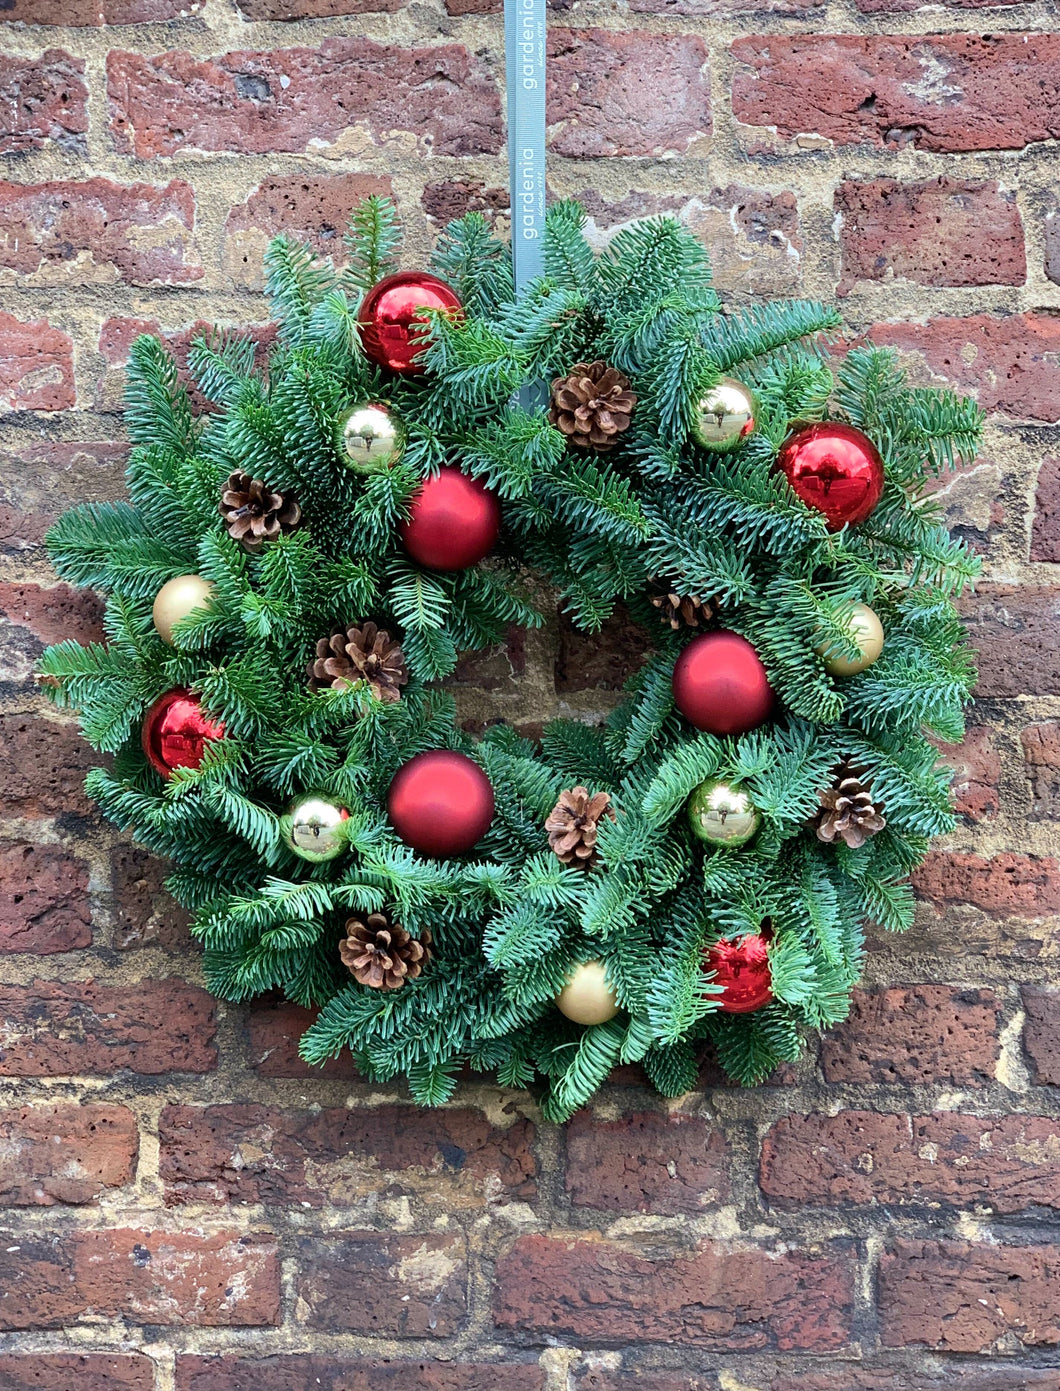 Bauble & pine cone wreath